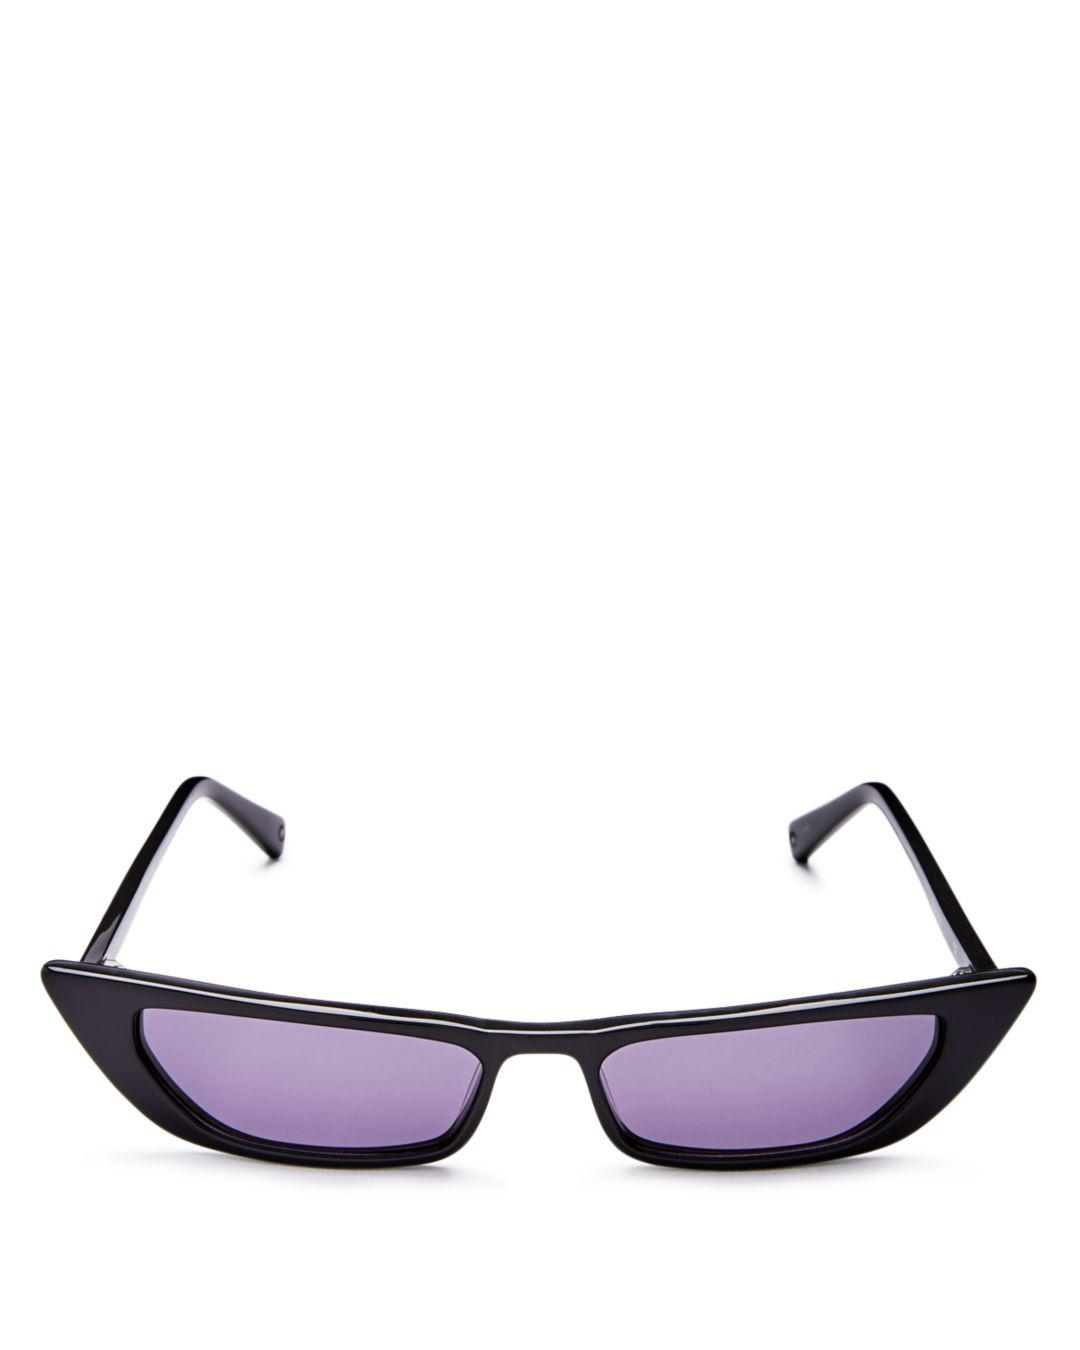 6bd4e03d2a7 Kendall + Kylie. Kendall And Kylie Women s Vivian Extreme Cat Eye Sunglasses  ...